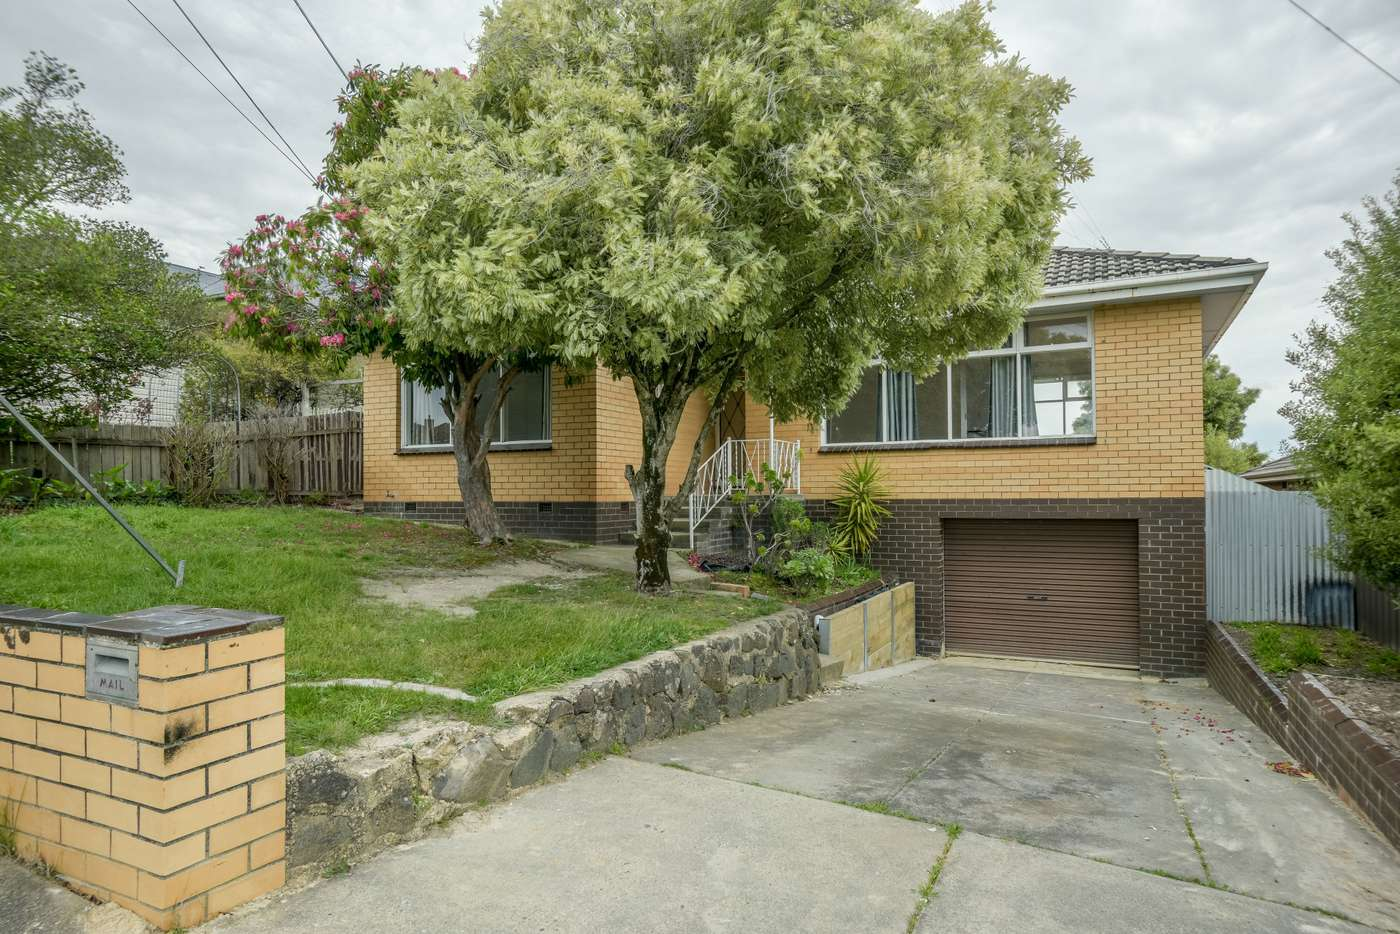 Main view of Homely house listing, 331 Landsborough Street, Ballarat North VIC 3350